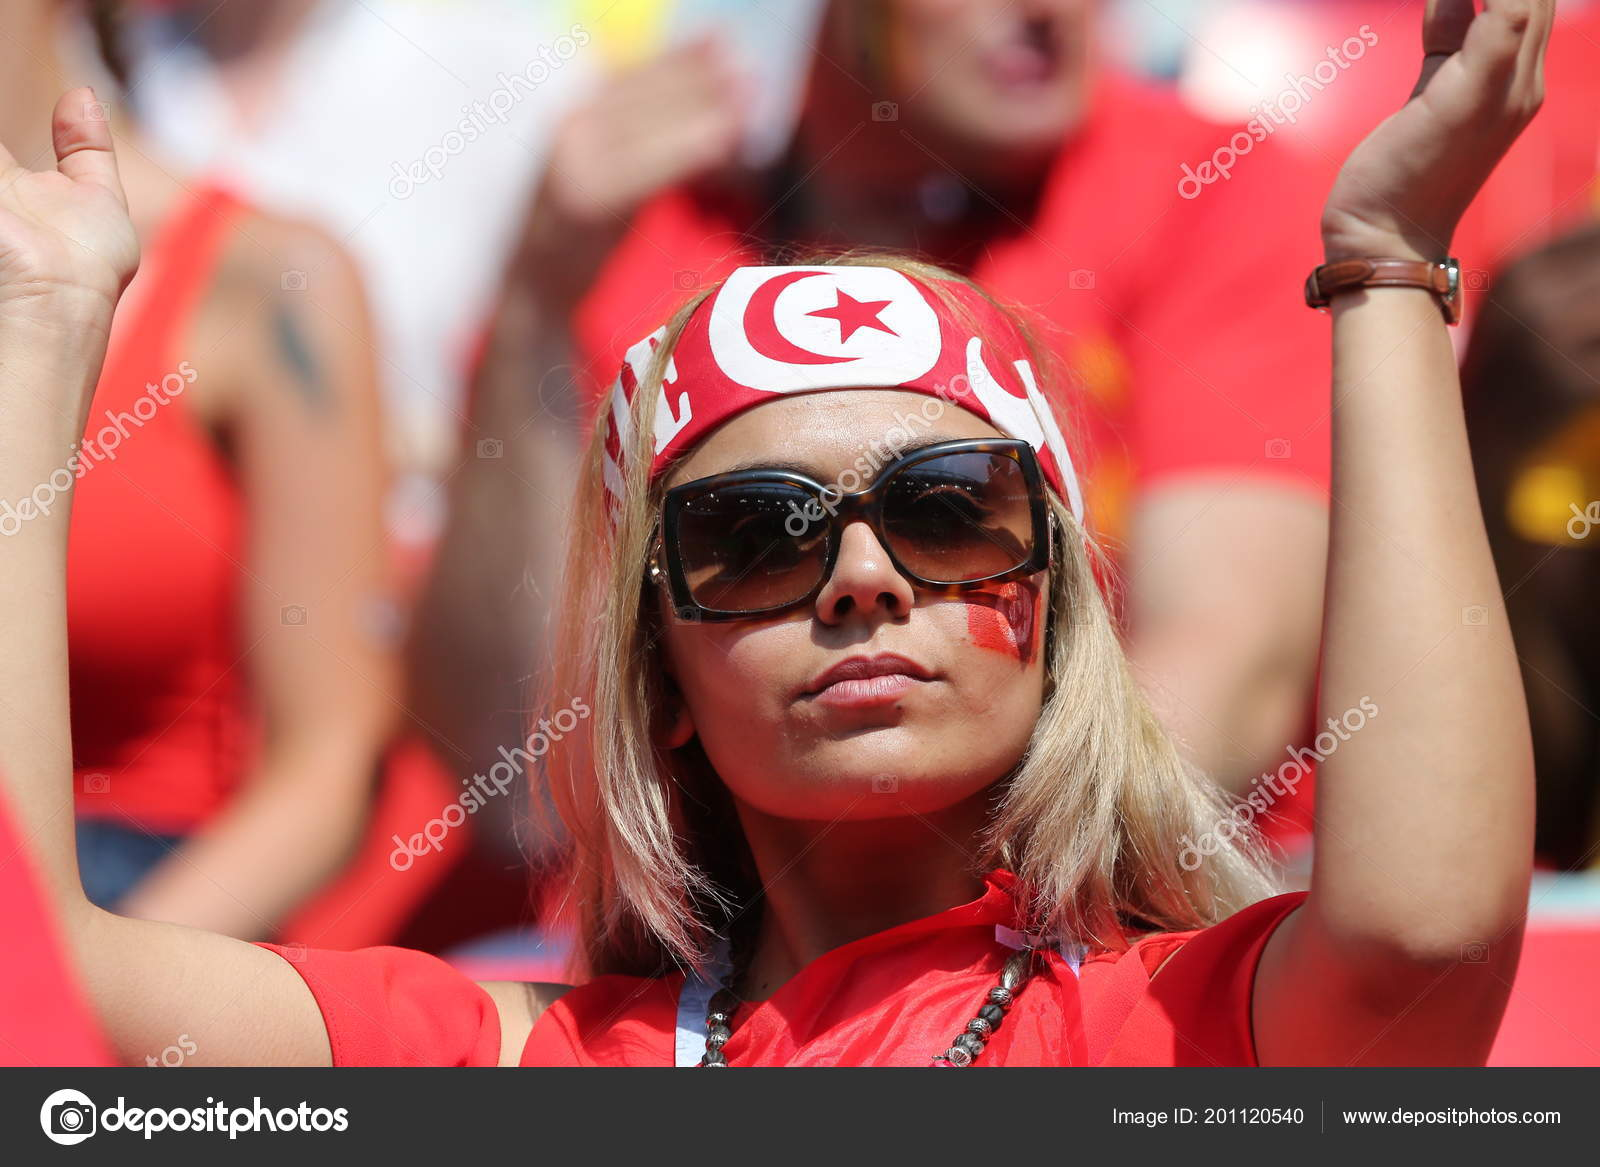 depositphotos_201120540-stock-photo-2018-moscow-russian-tunisian-fans.jpg